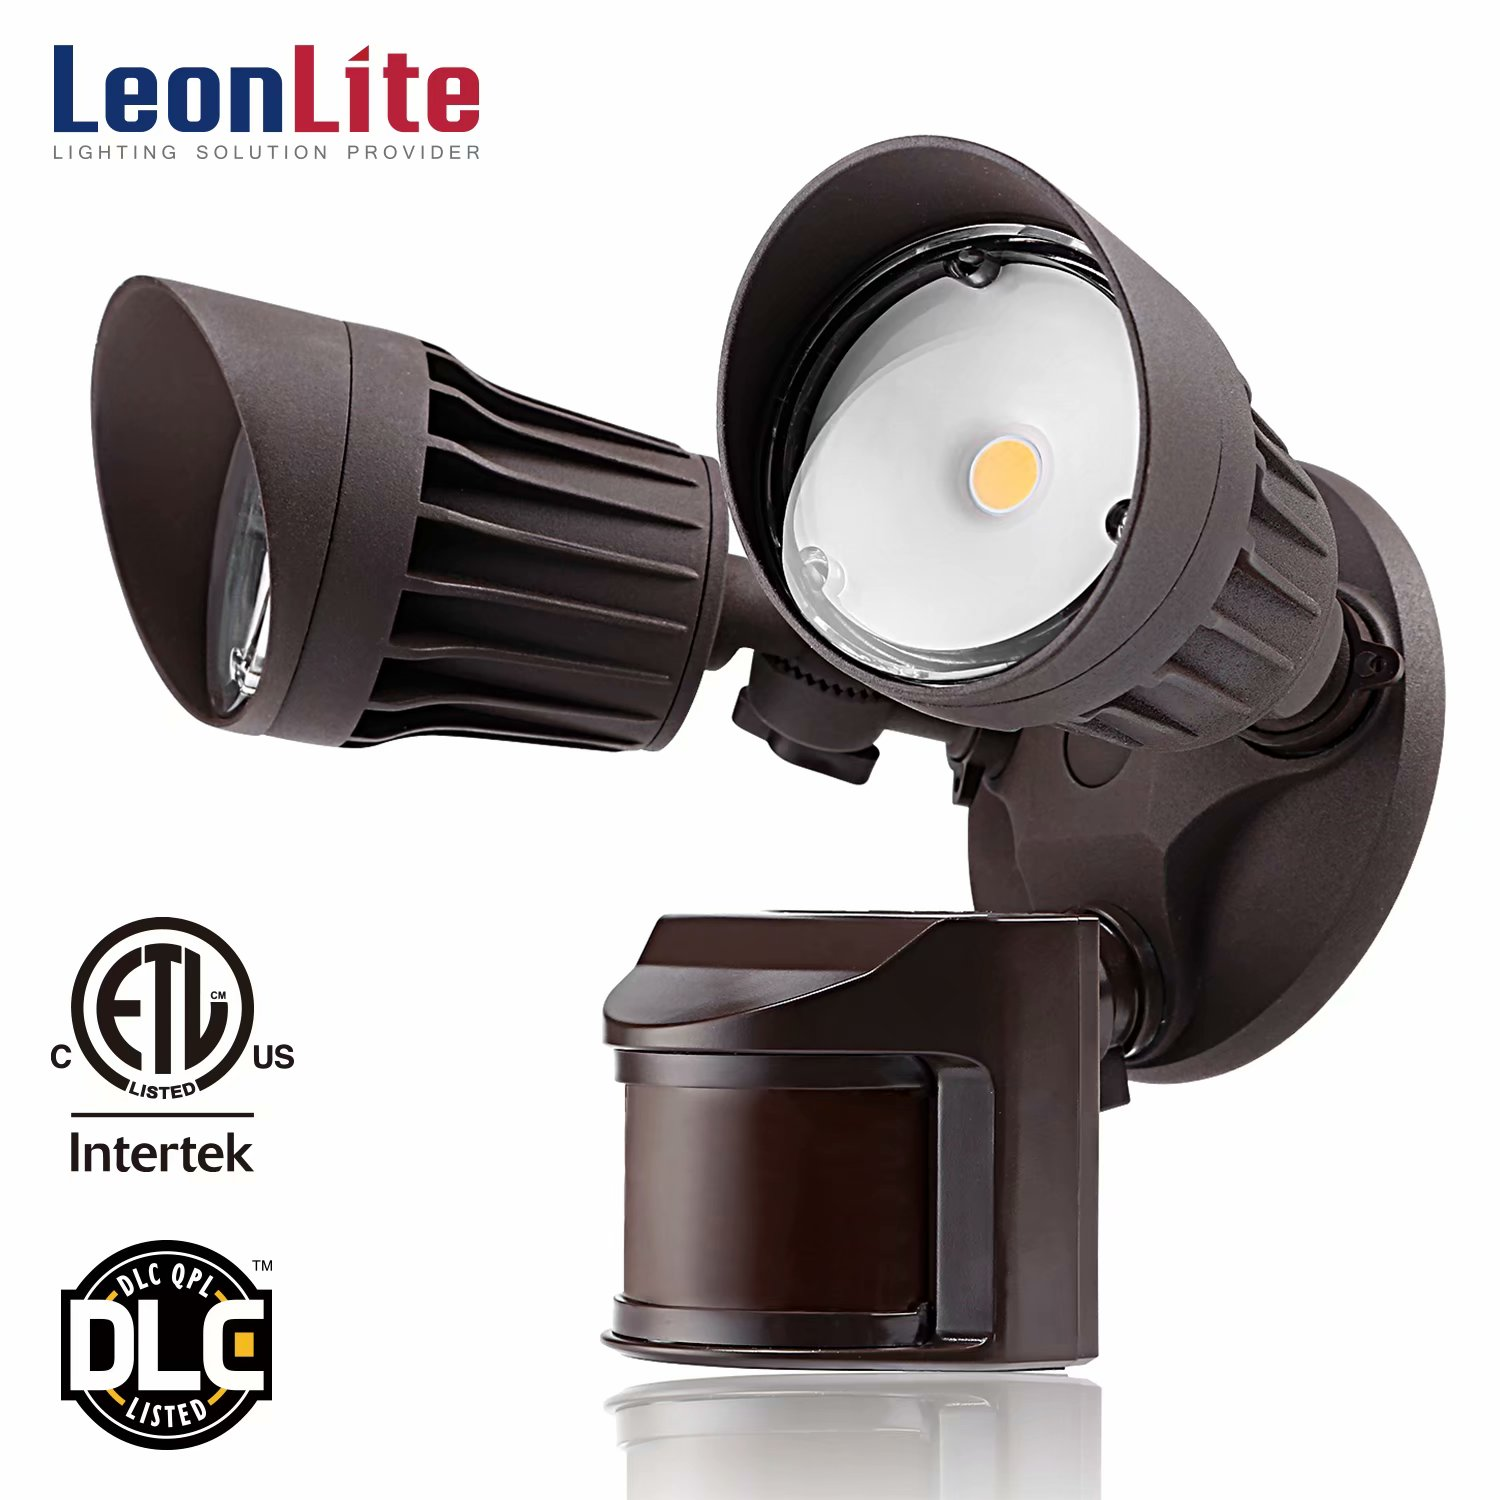 LEONLITE 20W Dual-Head Motion-Activated LED Outdoor Security Light for Patio, Yard, Photocell Included, 3 Lighting Modes, 5000K Daylight, Bronze